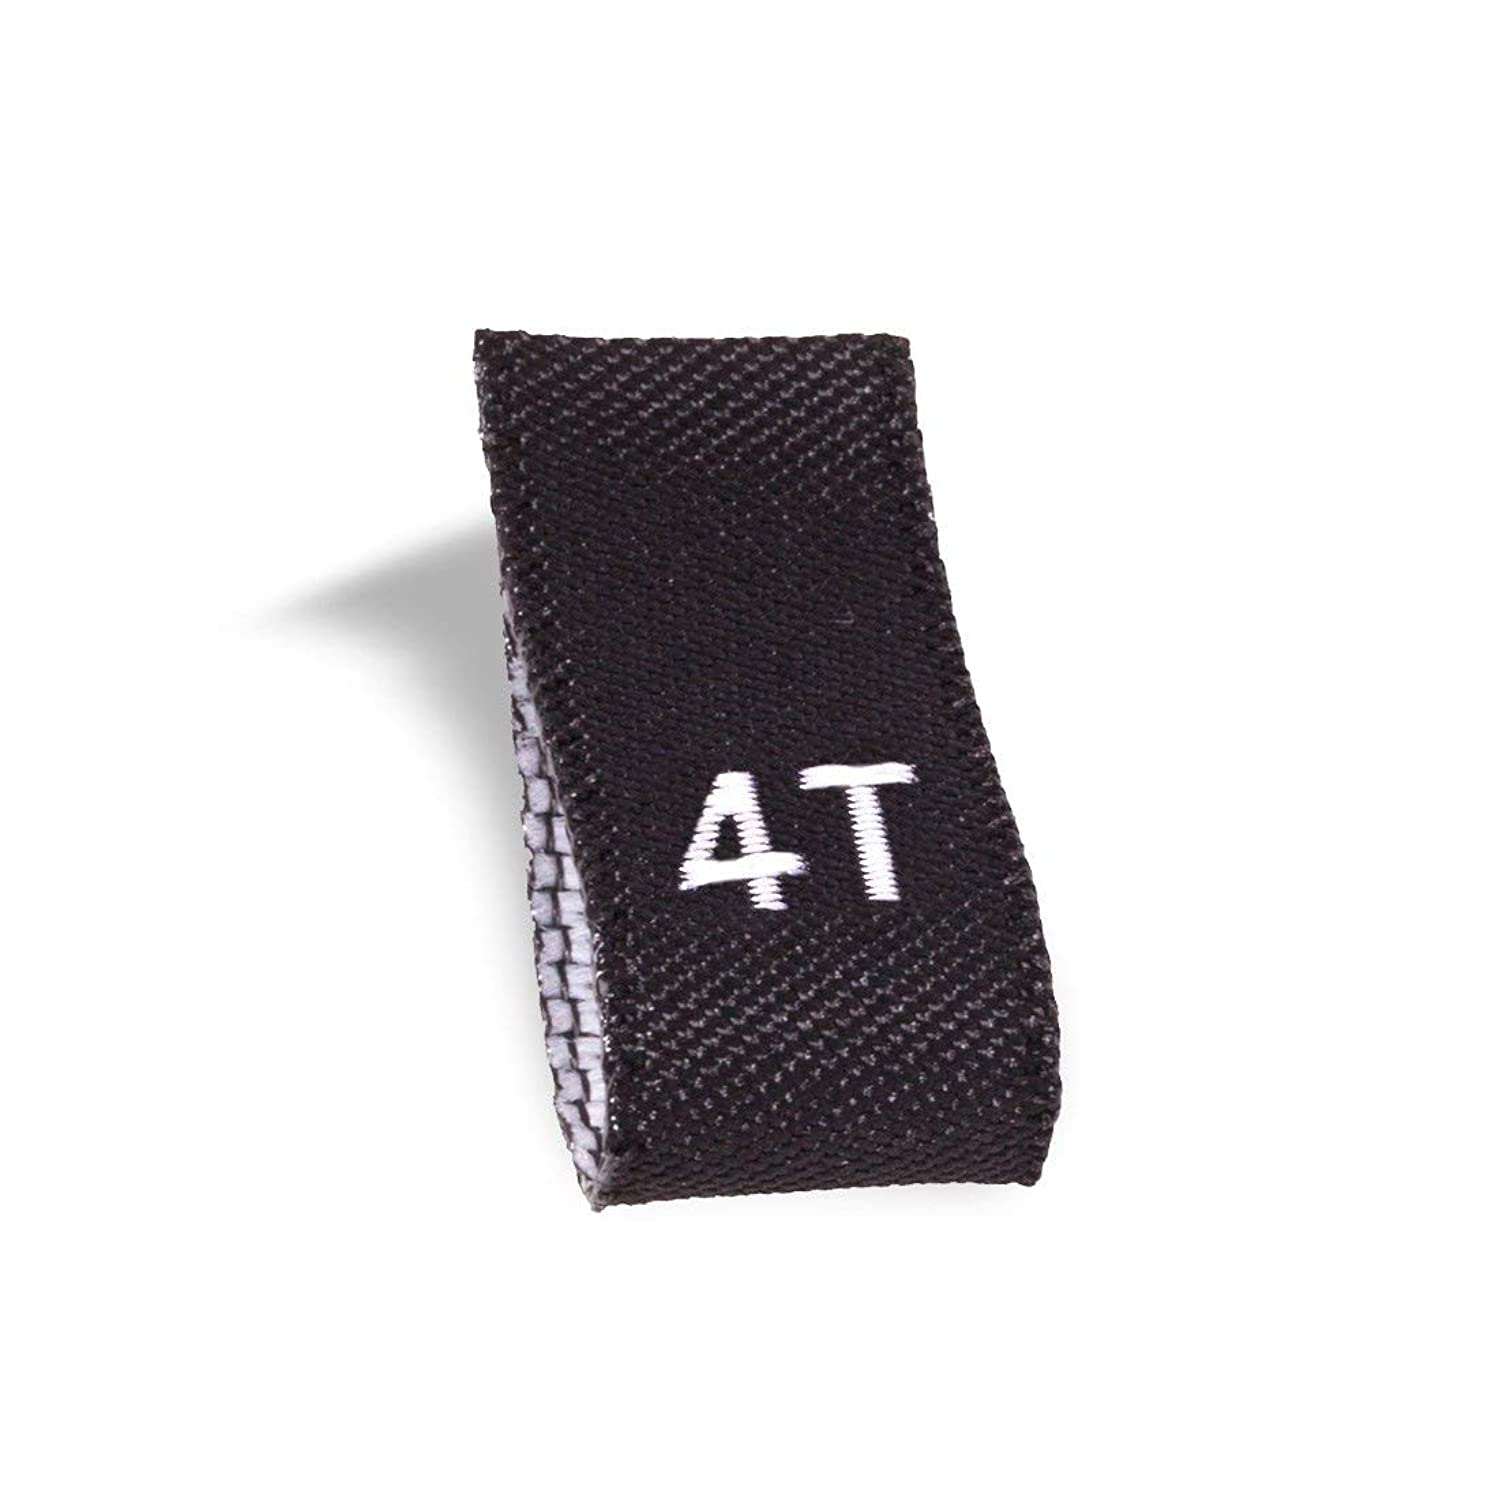 Wunderlabel Kid Size Label Woven Crafting Craft Art Fashion Ribbon Ribbons Tag for Clothing Sewing Sew on Clothes Garment Fabric Material Embroidered Label Labels Tags, White on Black, 4T, 100 Labels